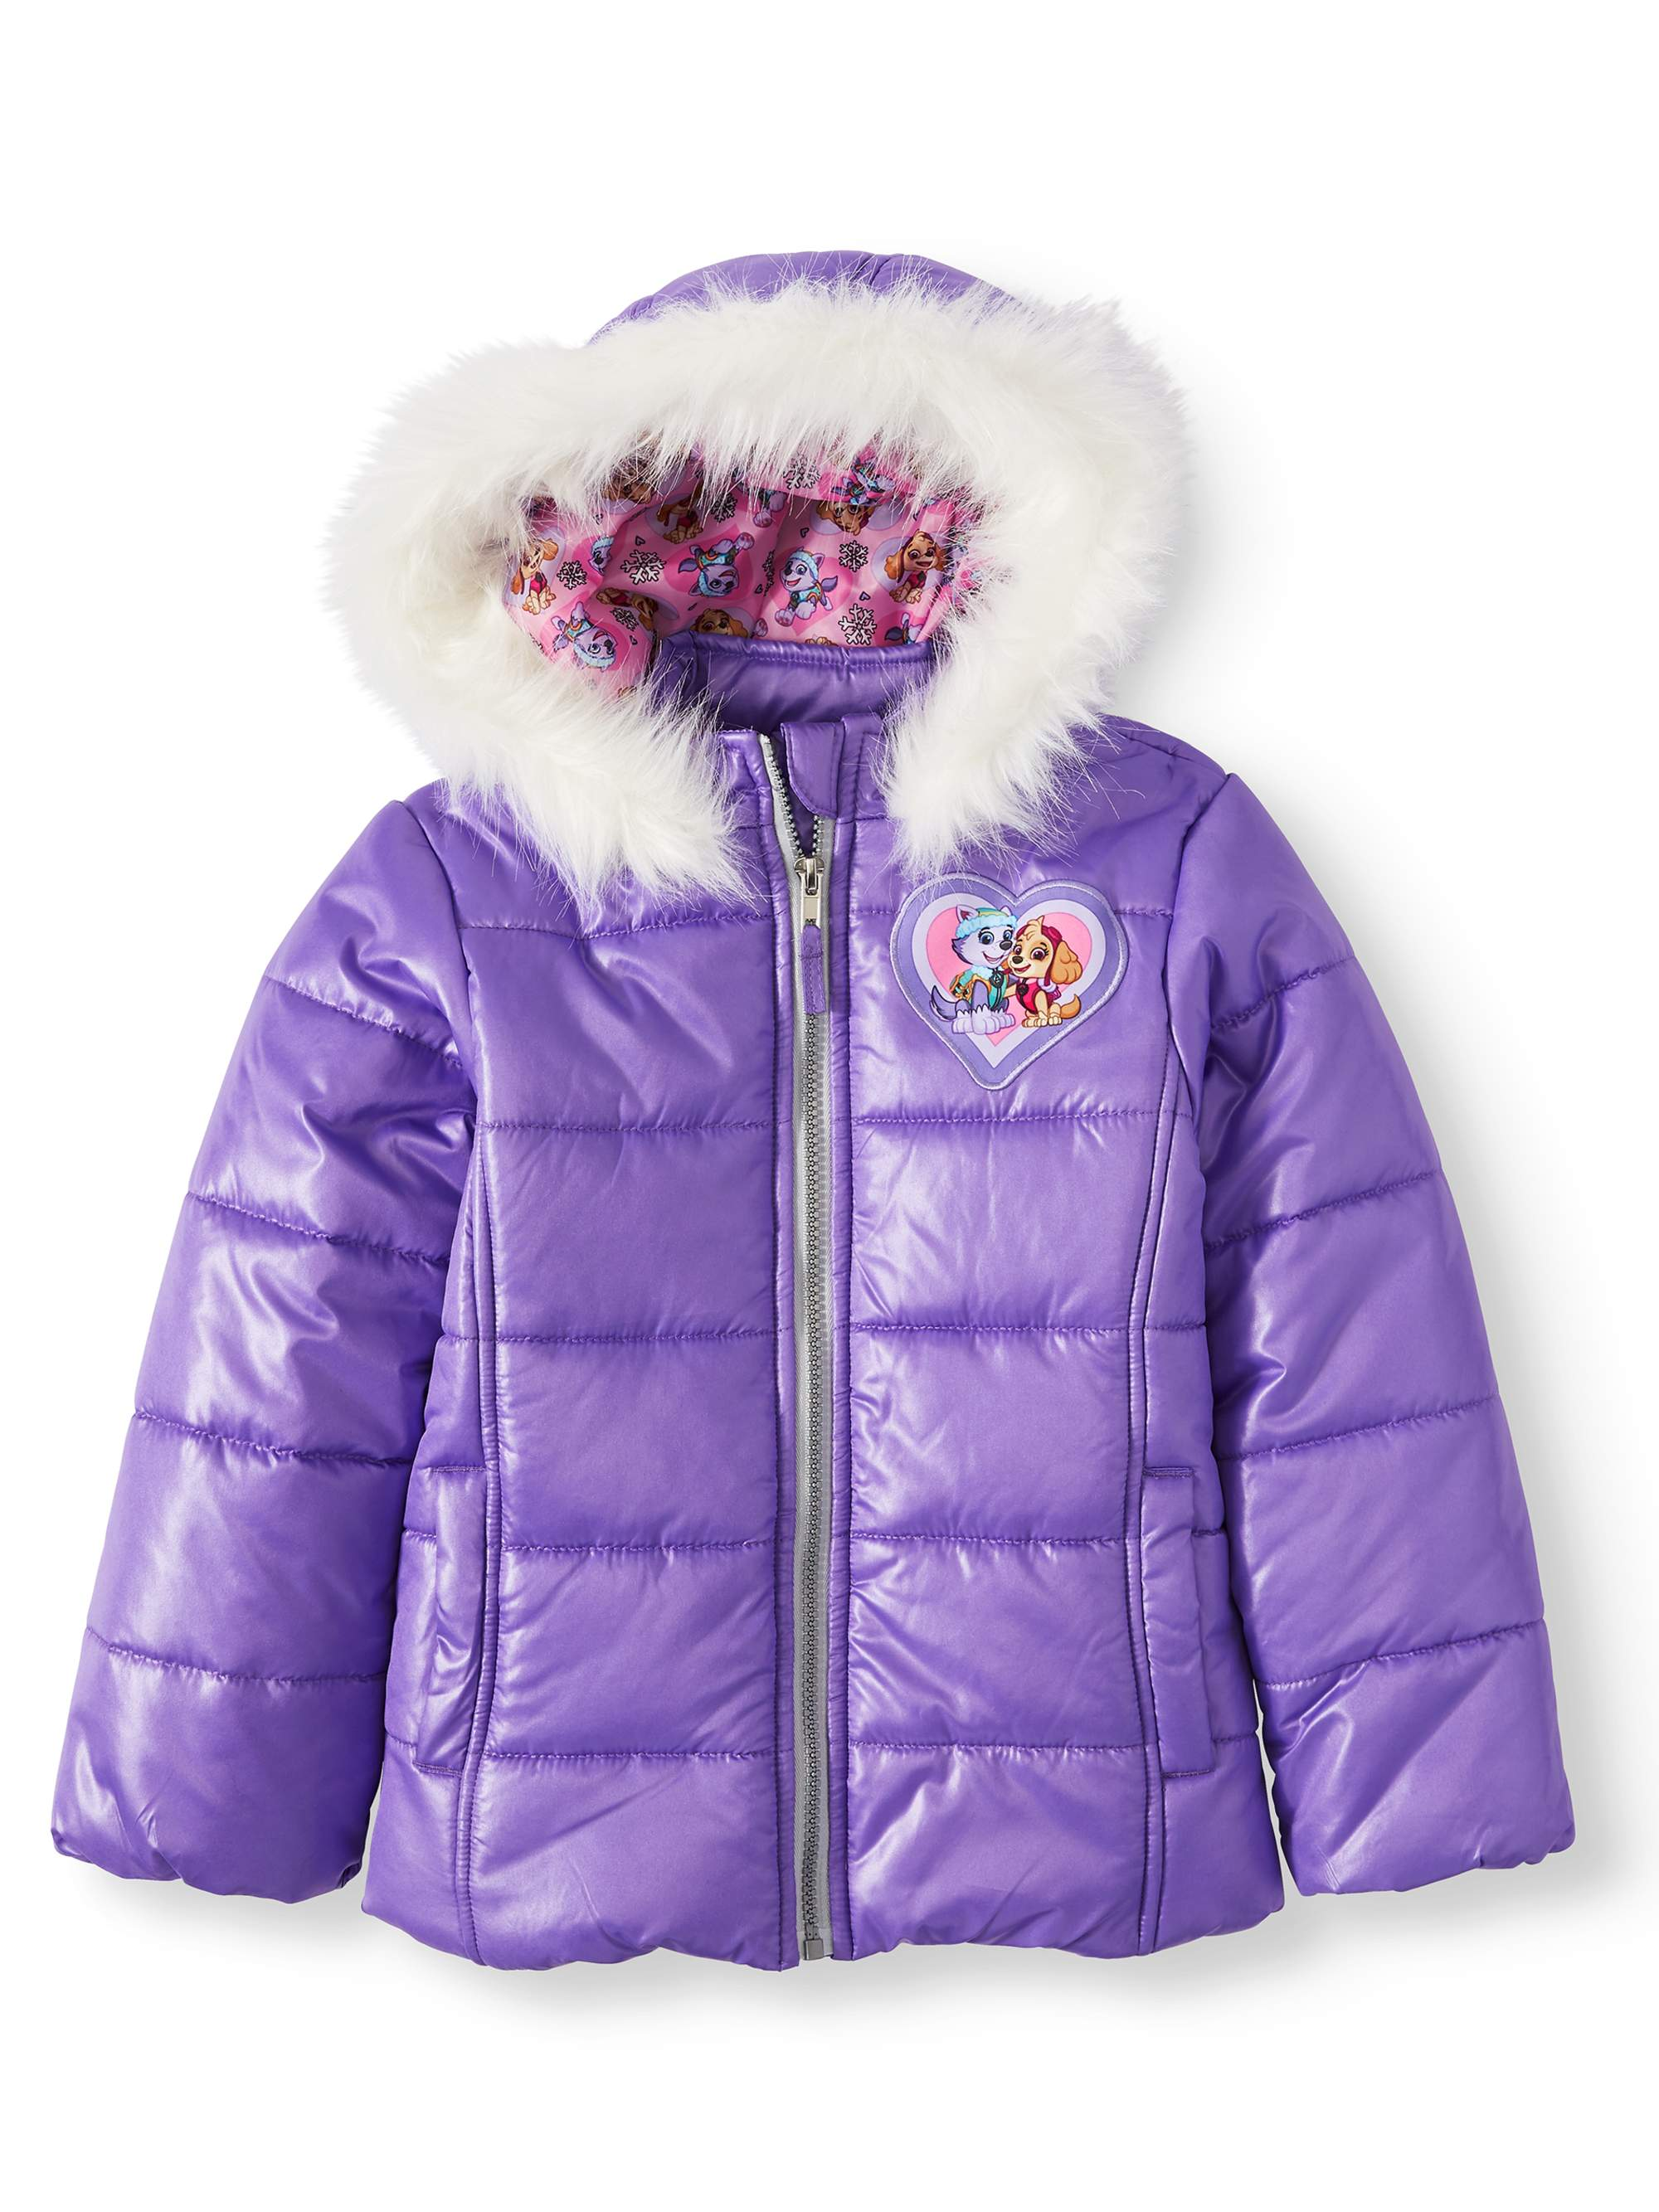 Boys Girls Kids Paw Patrol Hooded Winter Jacket Coat Puffer Age 2 to 3-4 to 5